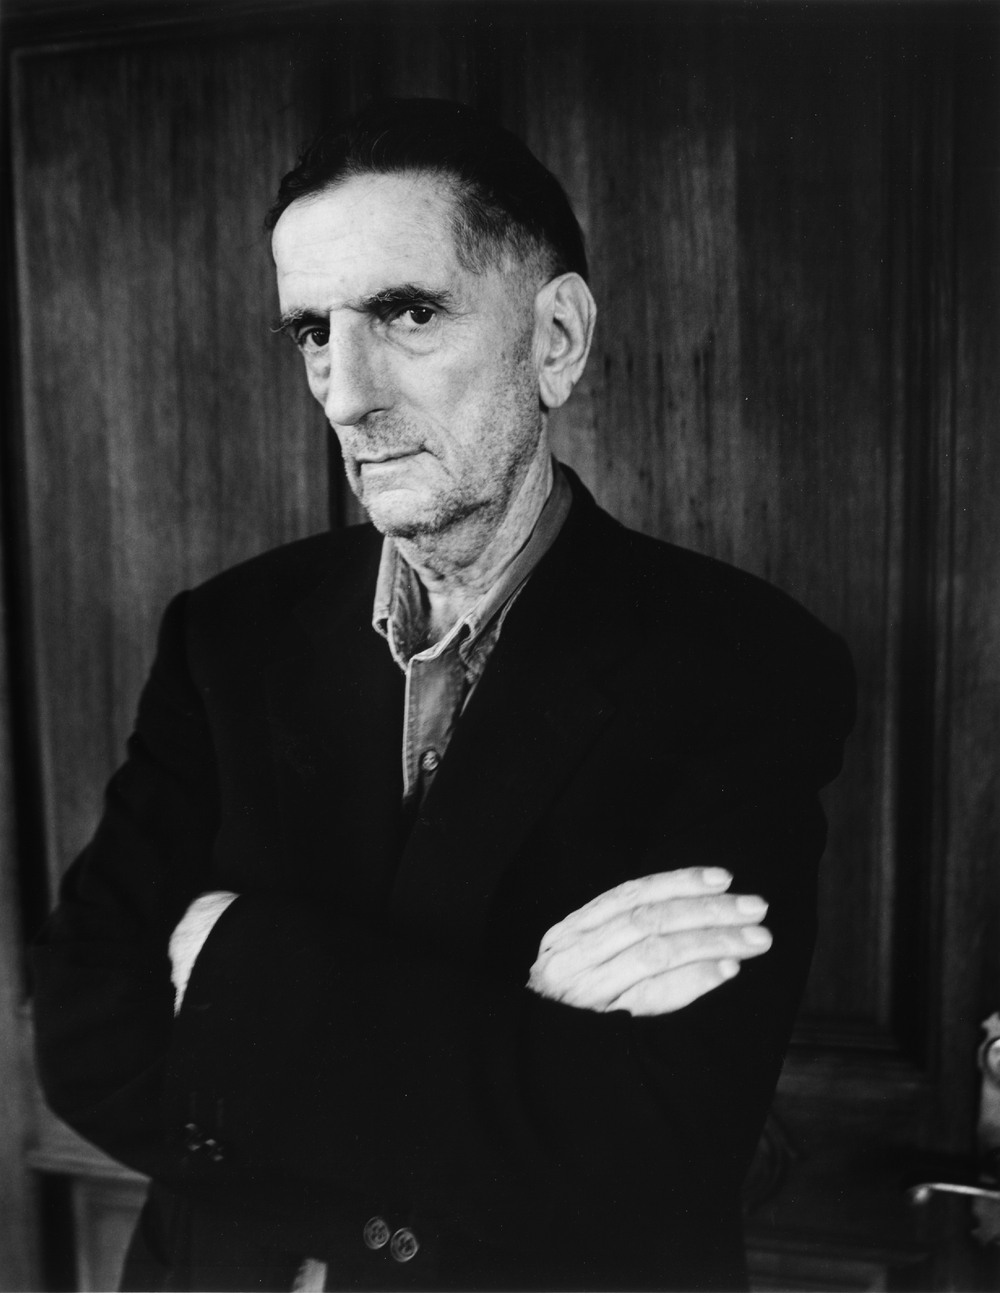 Harry Dean Stanton by Patrik Andersson